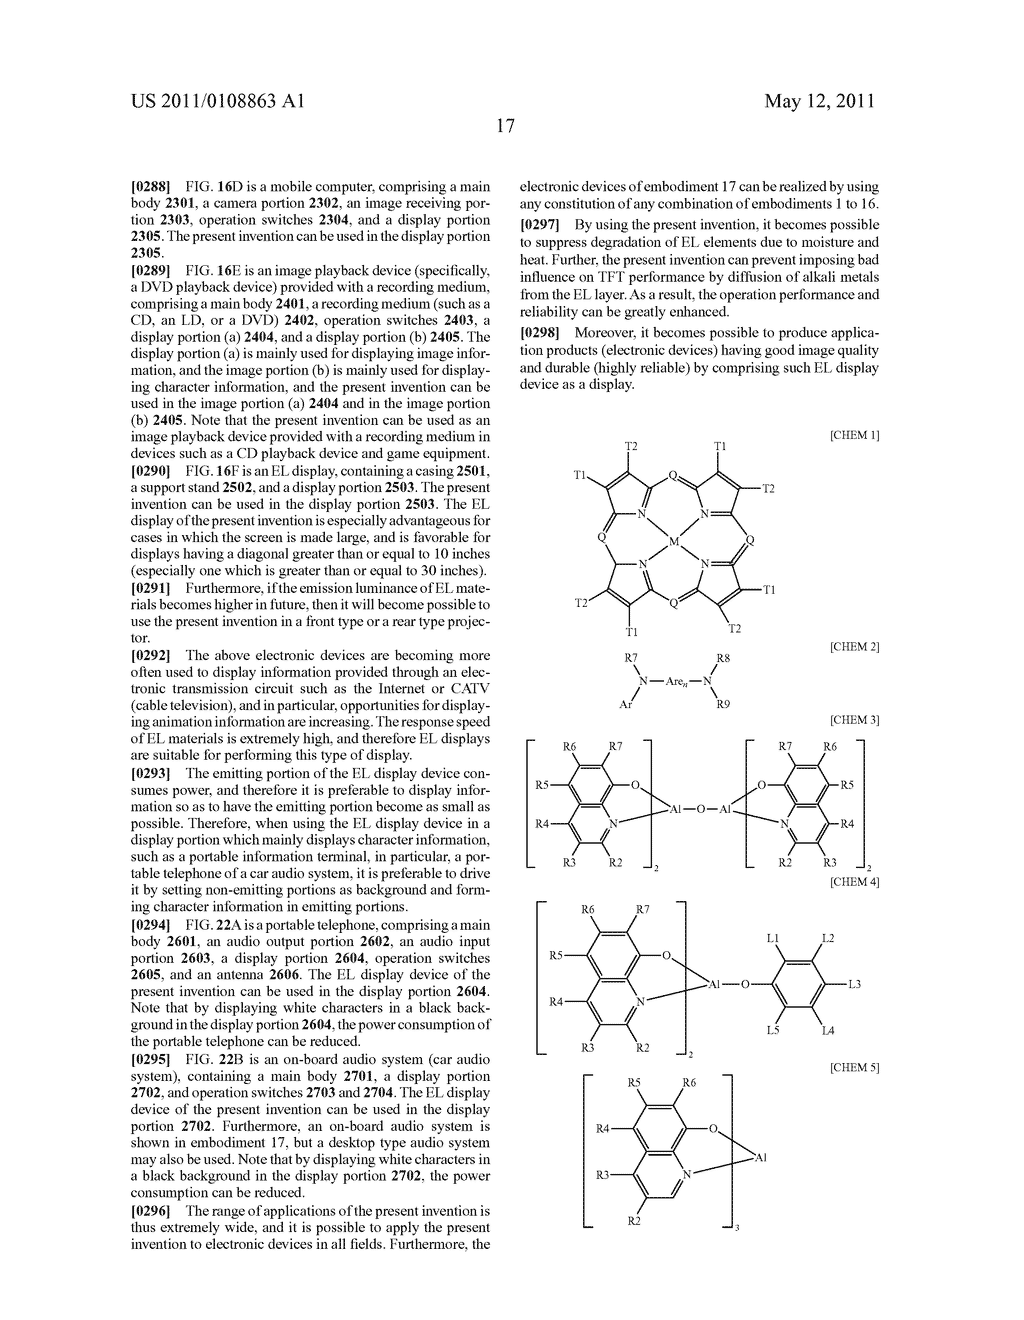 METHOD FOR MANUFACTURING AN ELECTRO-OPTICAL DEVICE - diagram, schematic, and image 38